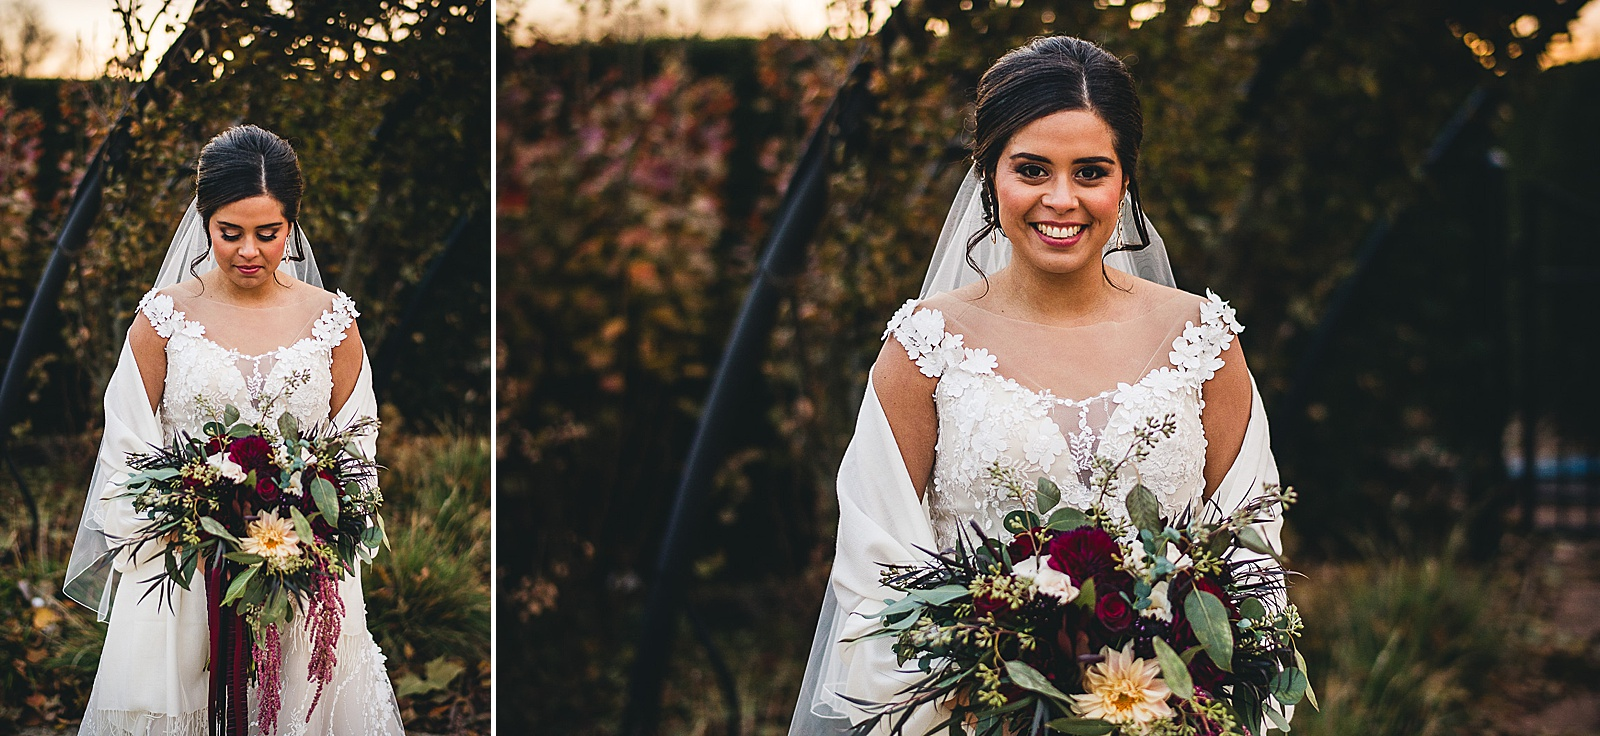 18 beautiful bride - Chicago Wedding Photography at Morton Arboretum // Alex + Tim